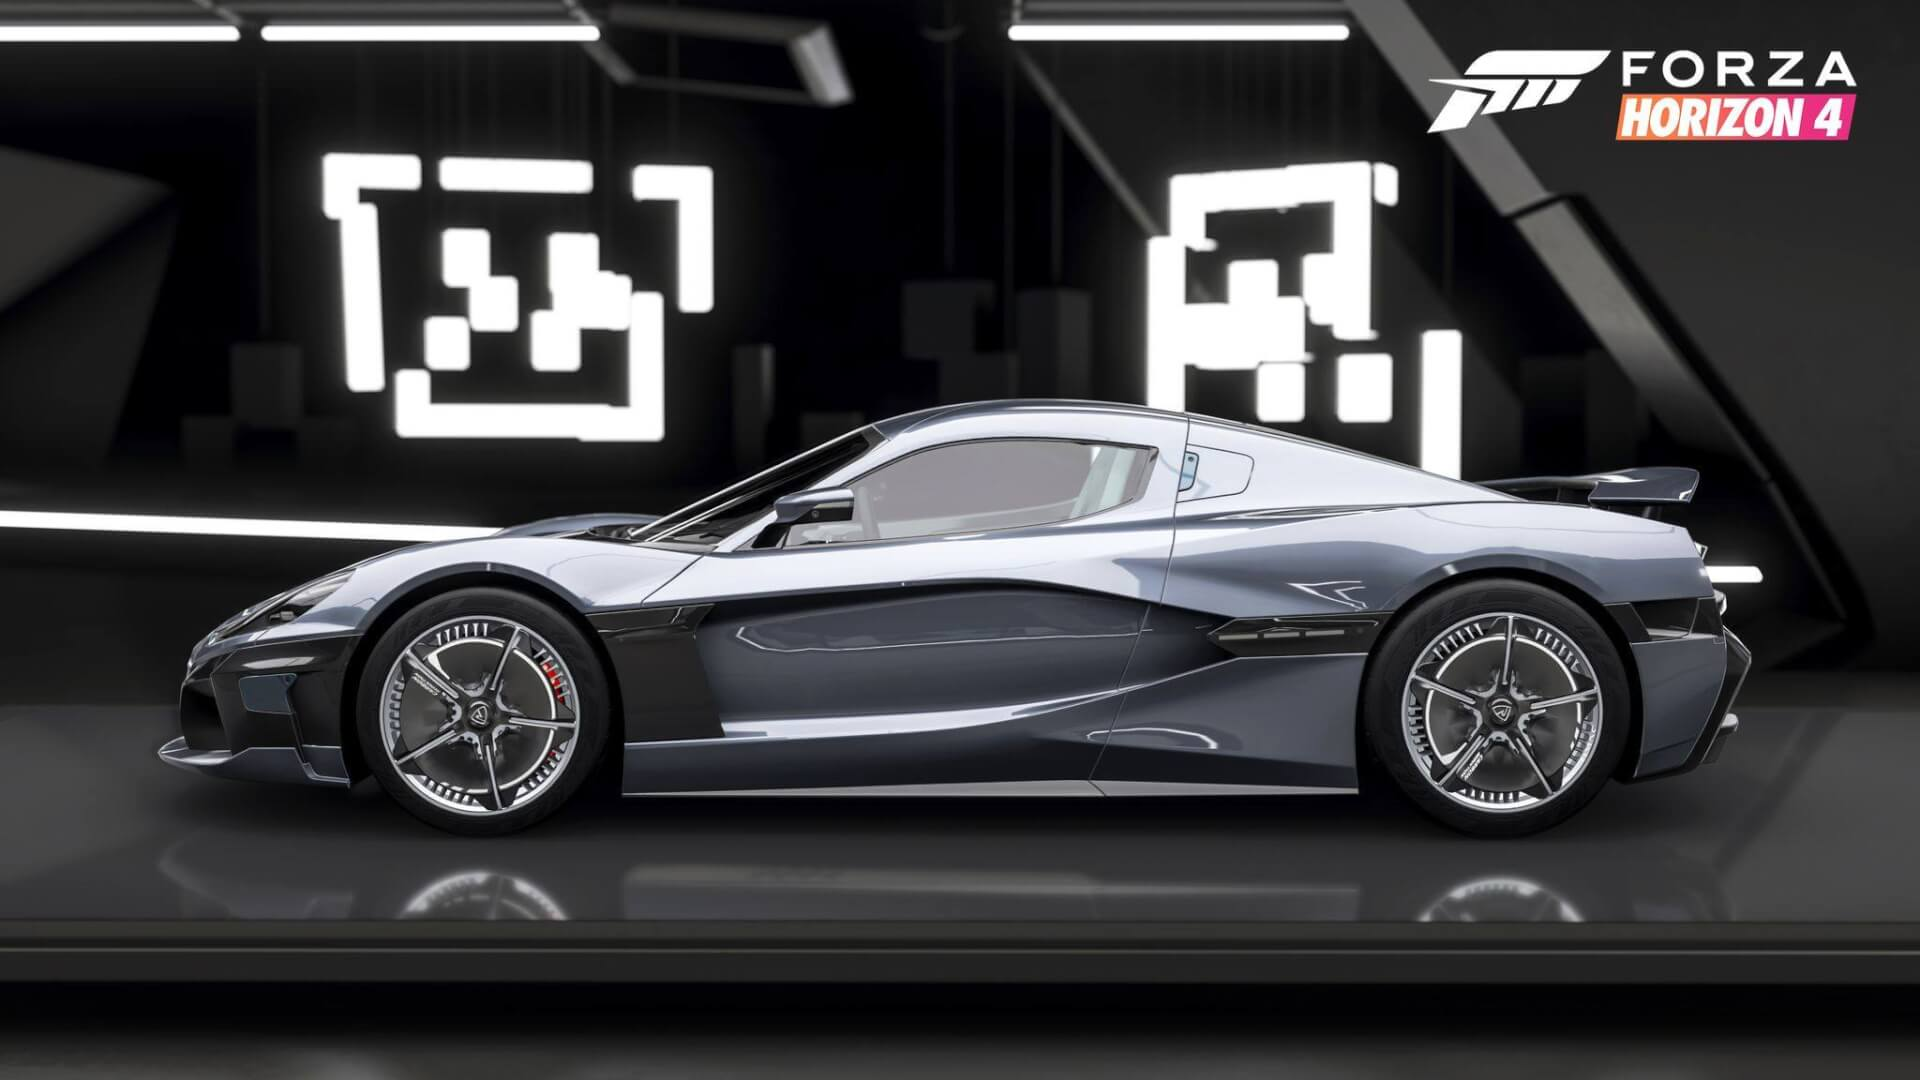 Forza Horizon 4 Series 10 Introduces All-Electric 2019 Rimac C-Two